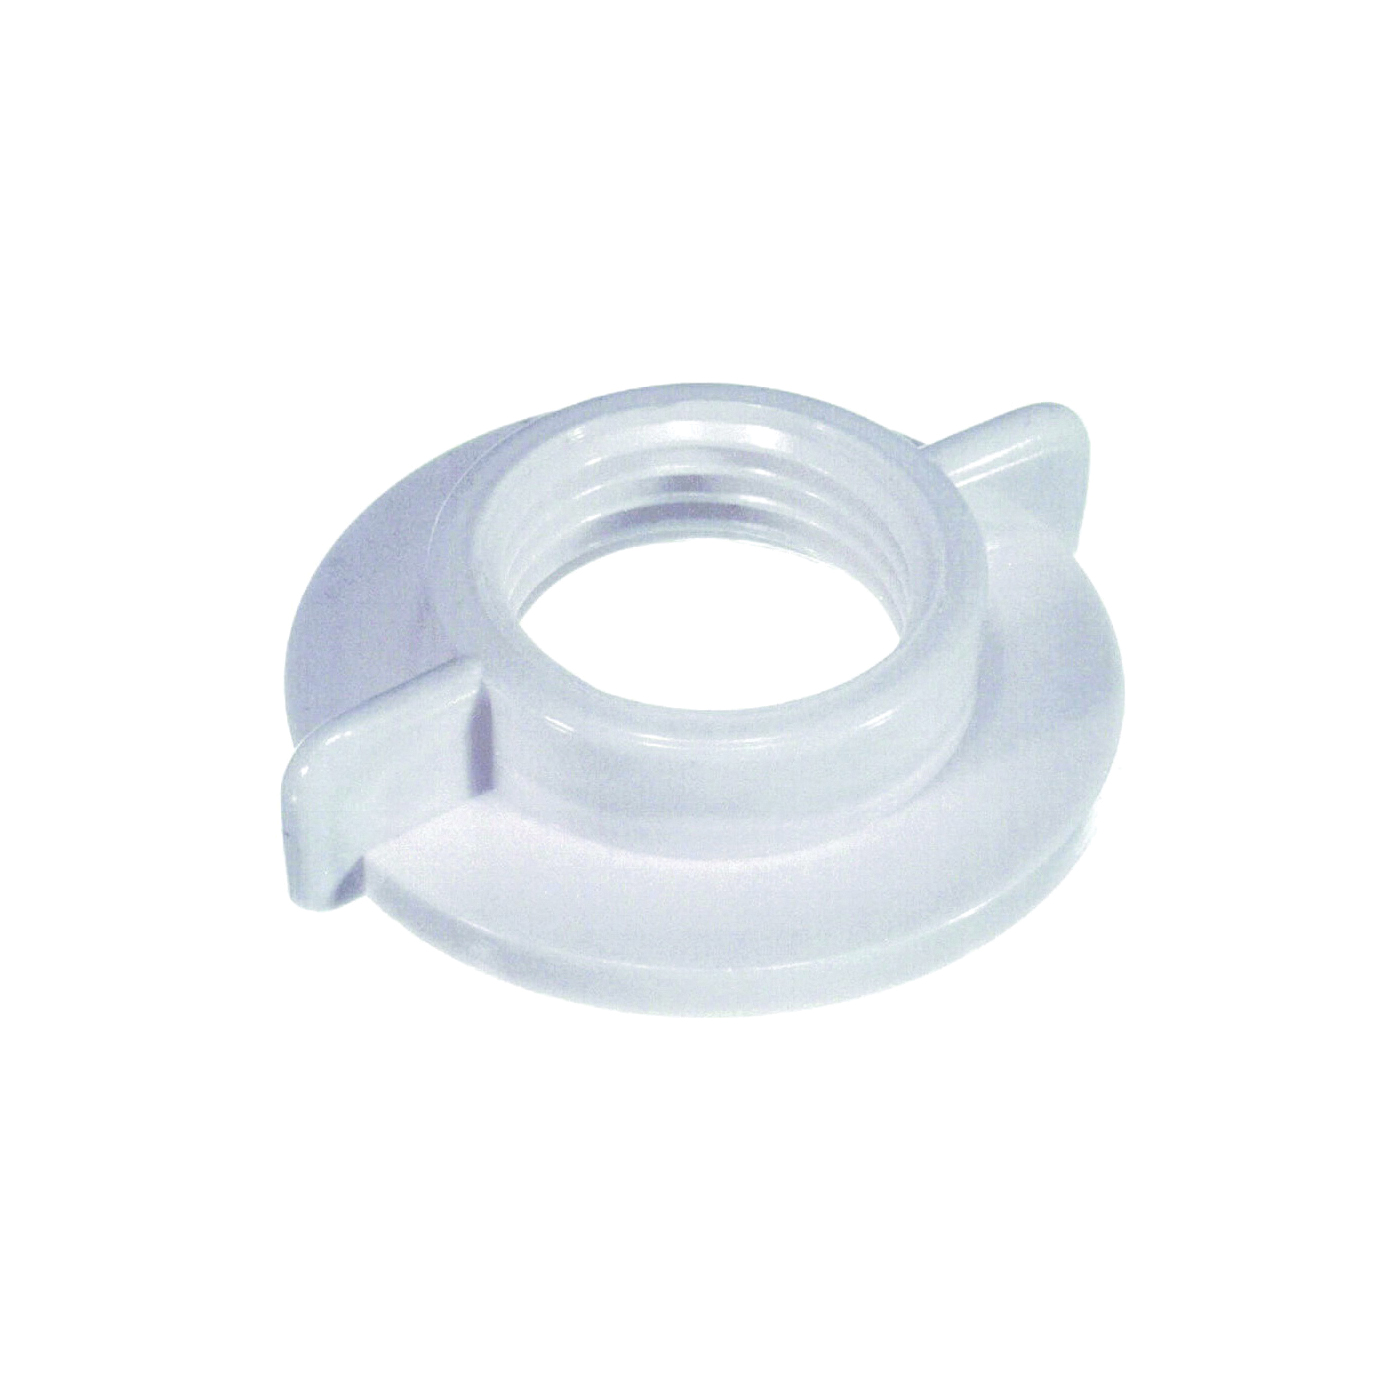 Picture of Danco 80990 Faucet Shank Locknut, Universal, Plastic, White, For: 1/2 in IPS Connections